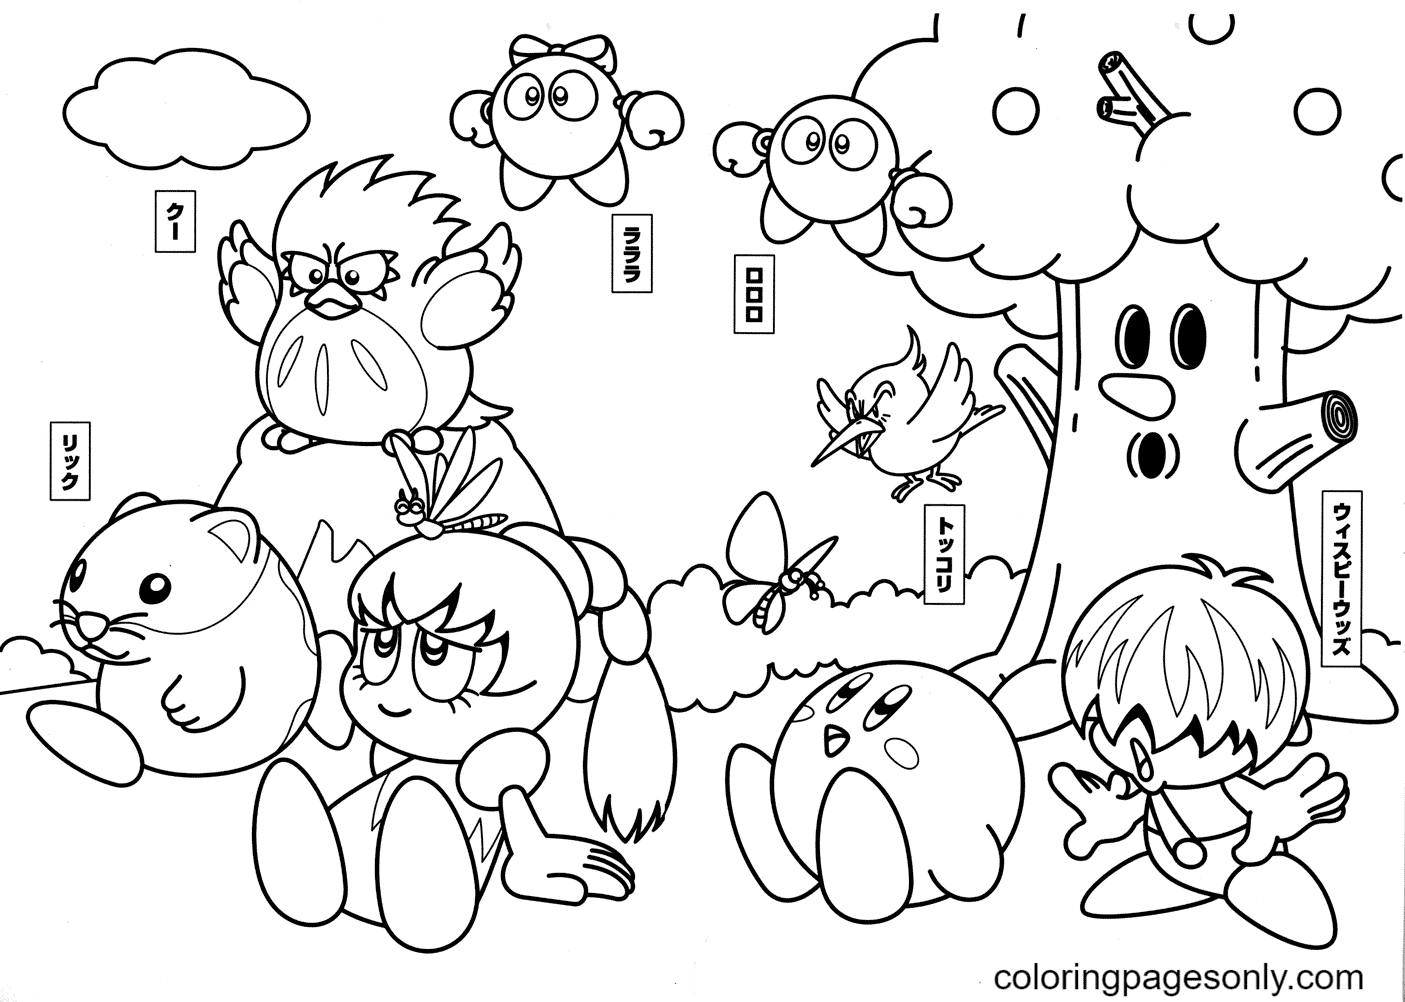 Free Printable Kirby Coloring Page